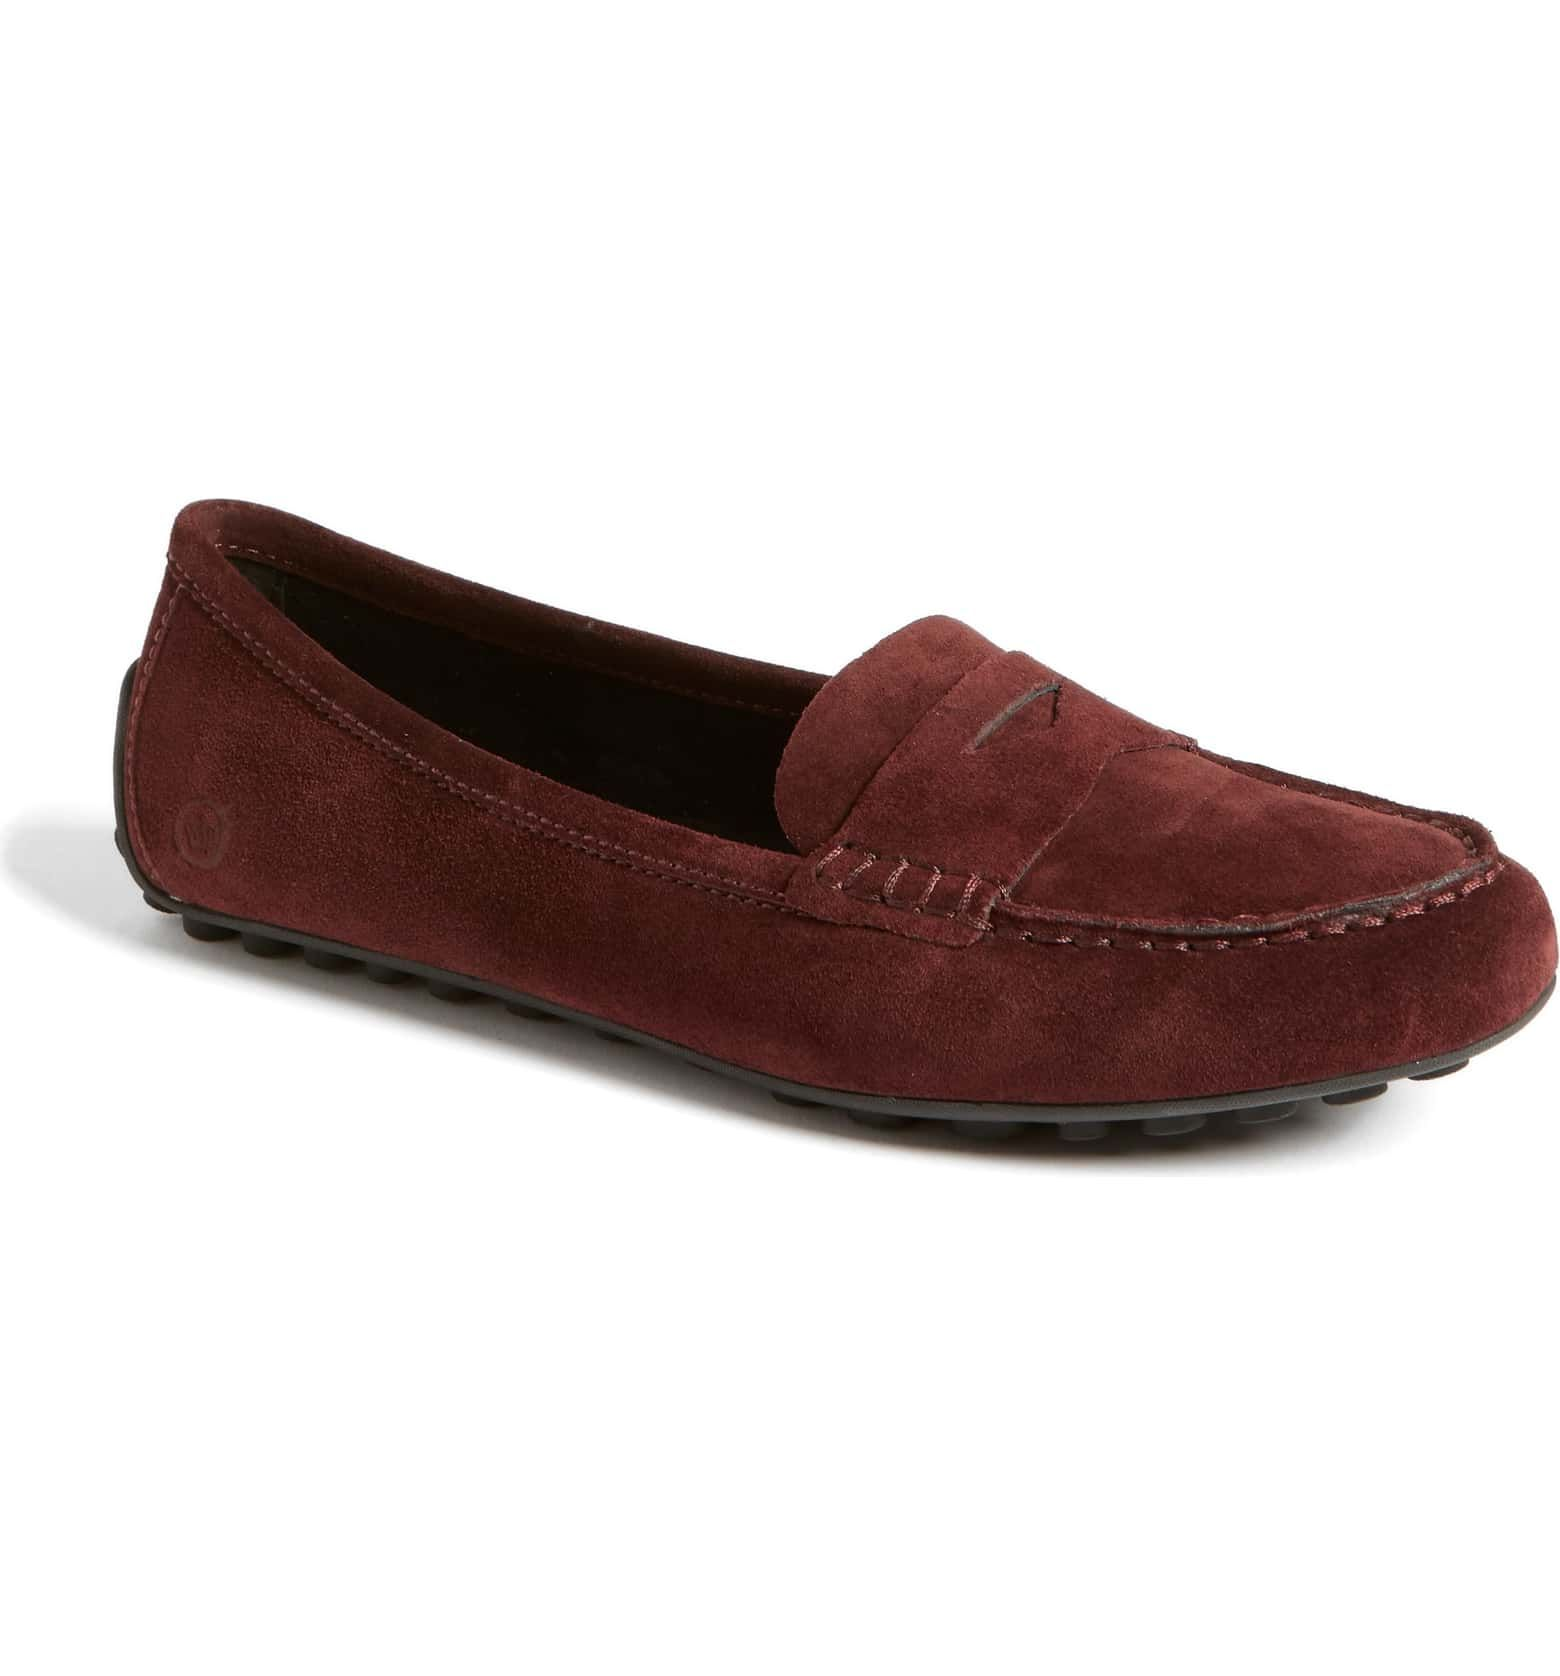 ee8c1d99532 Malena Penny Loafer